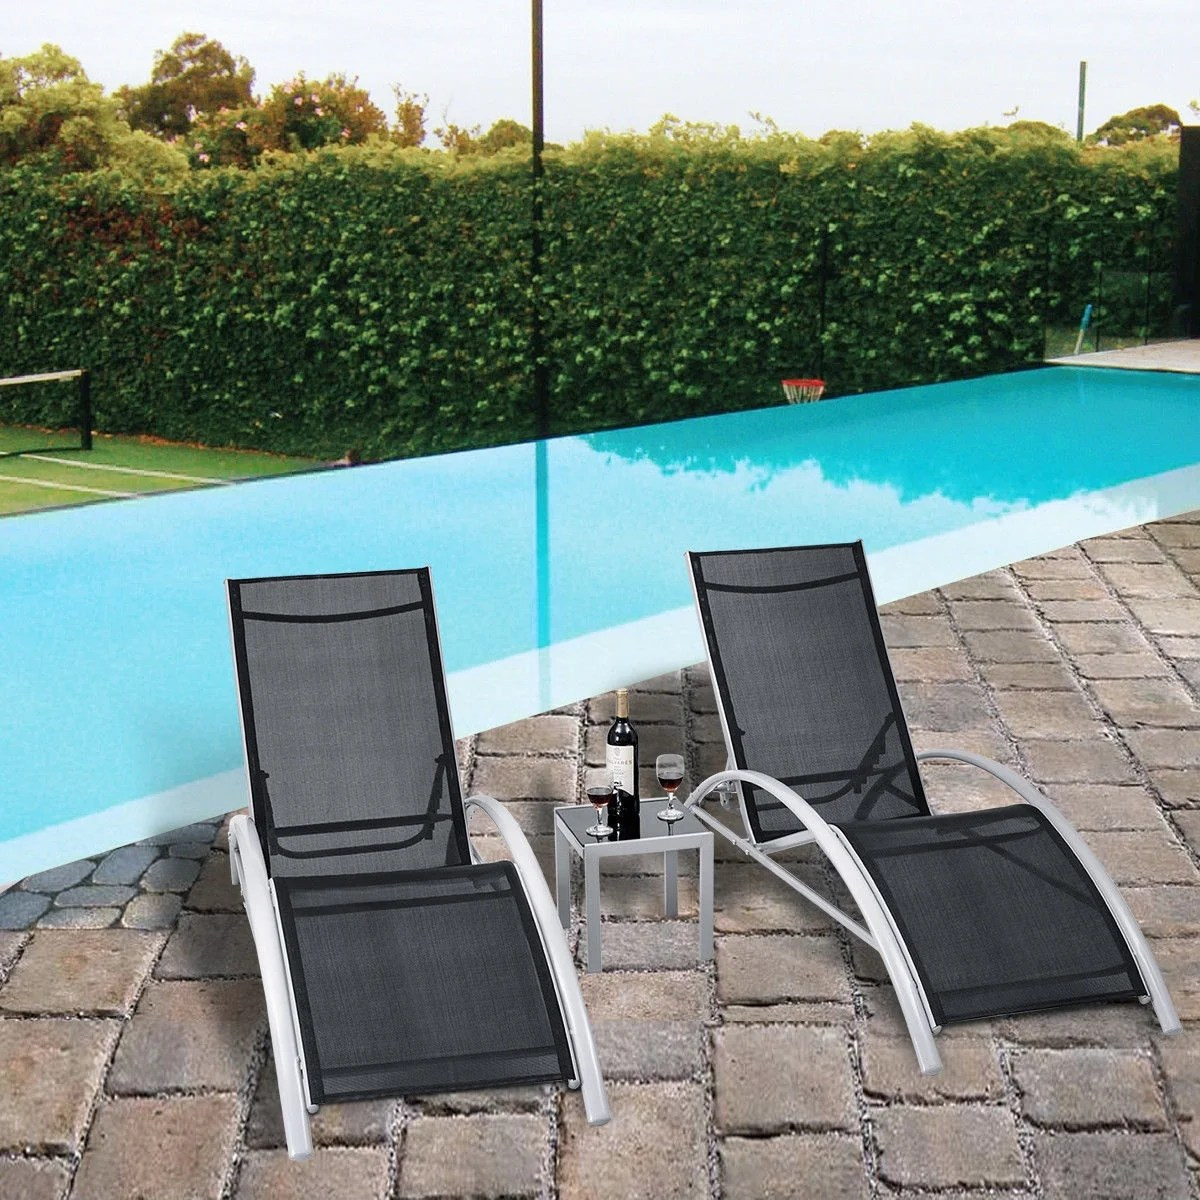 Chairs For Pool 3 Pcs Outdoor Patio Pool Lounger Set Reclining Garden Chairs Glass Table